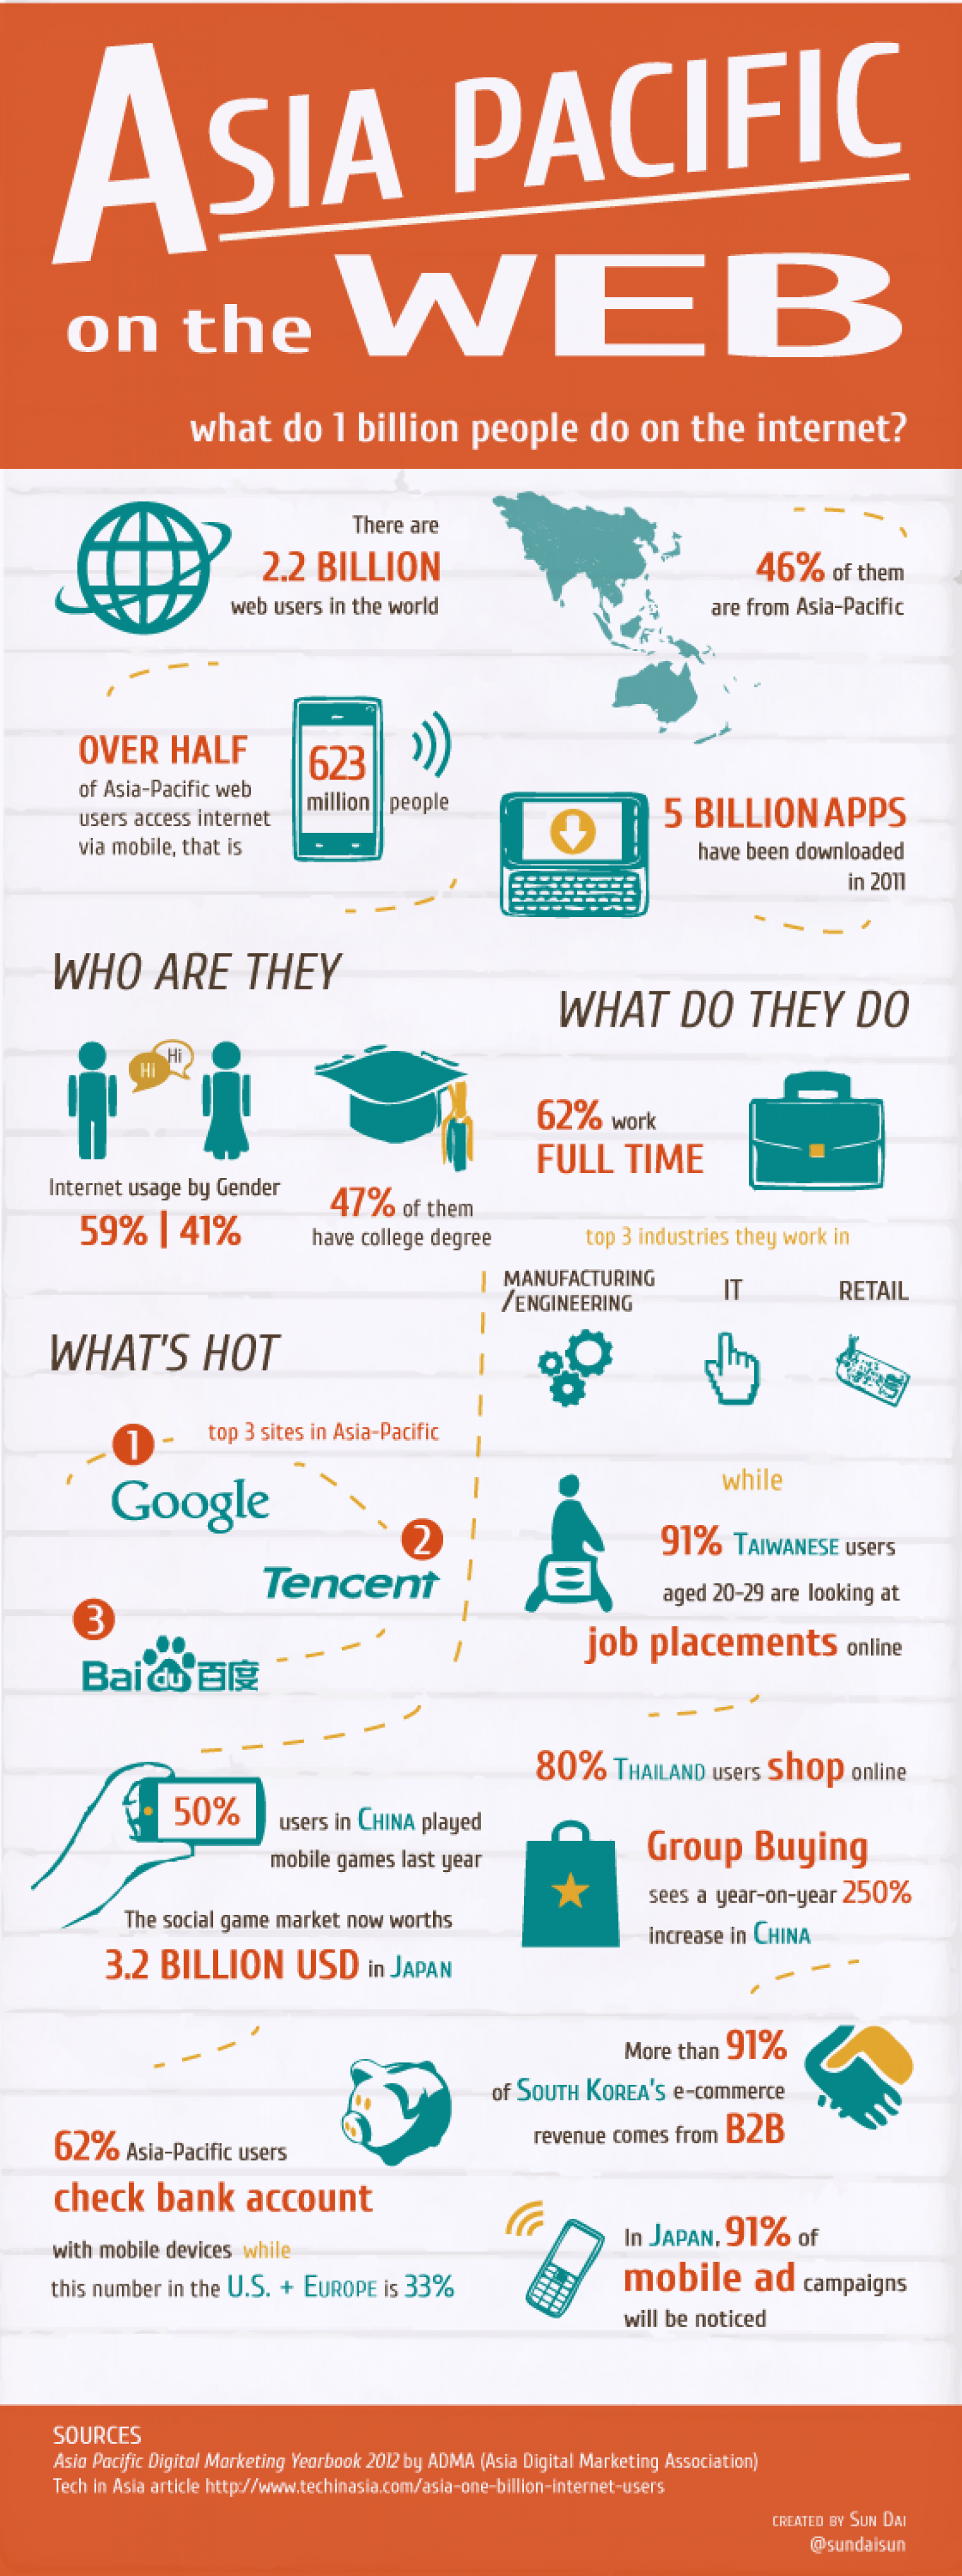 Asia Pacific on the Web: What do 1 Billion People do on the Internet? Infographic